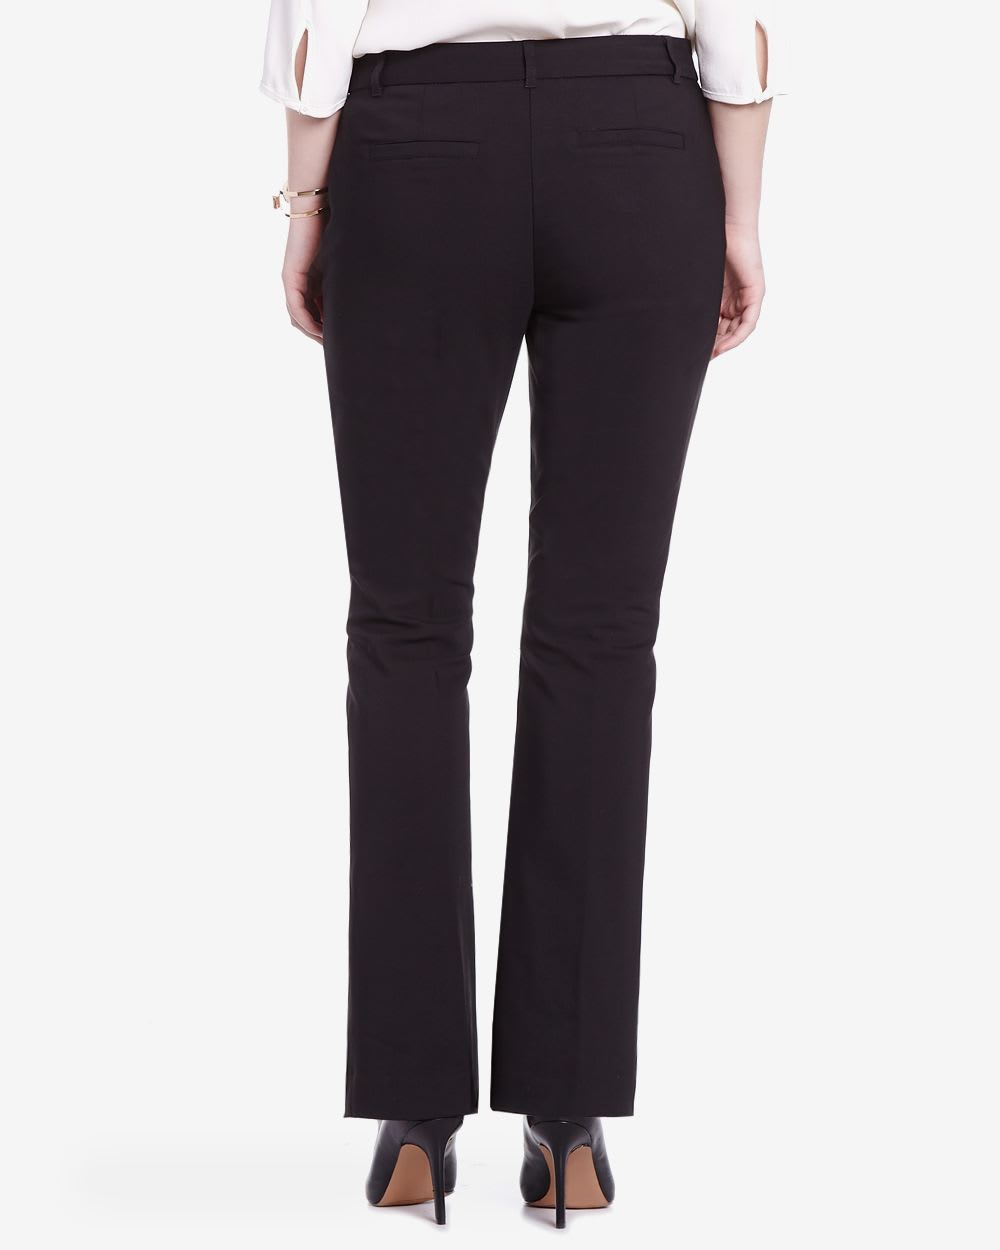 Women's Fashion Bandage Mid-Rise Bell-Bottom Wide Leg Flare Denim Pants Jeans Trousers $ 30 88 Prime. out of 5 stars Ybenlow. Women's Vertical Striped High Waist Stretch Wide Leg Long Bottom Pallazo Capris Pants with Waist Tie. from $ 18 99 Prime. out of 5 stars Fandicto.